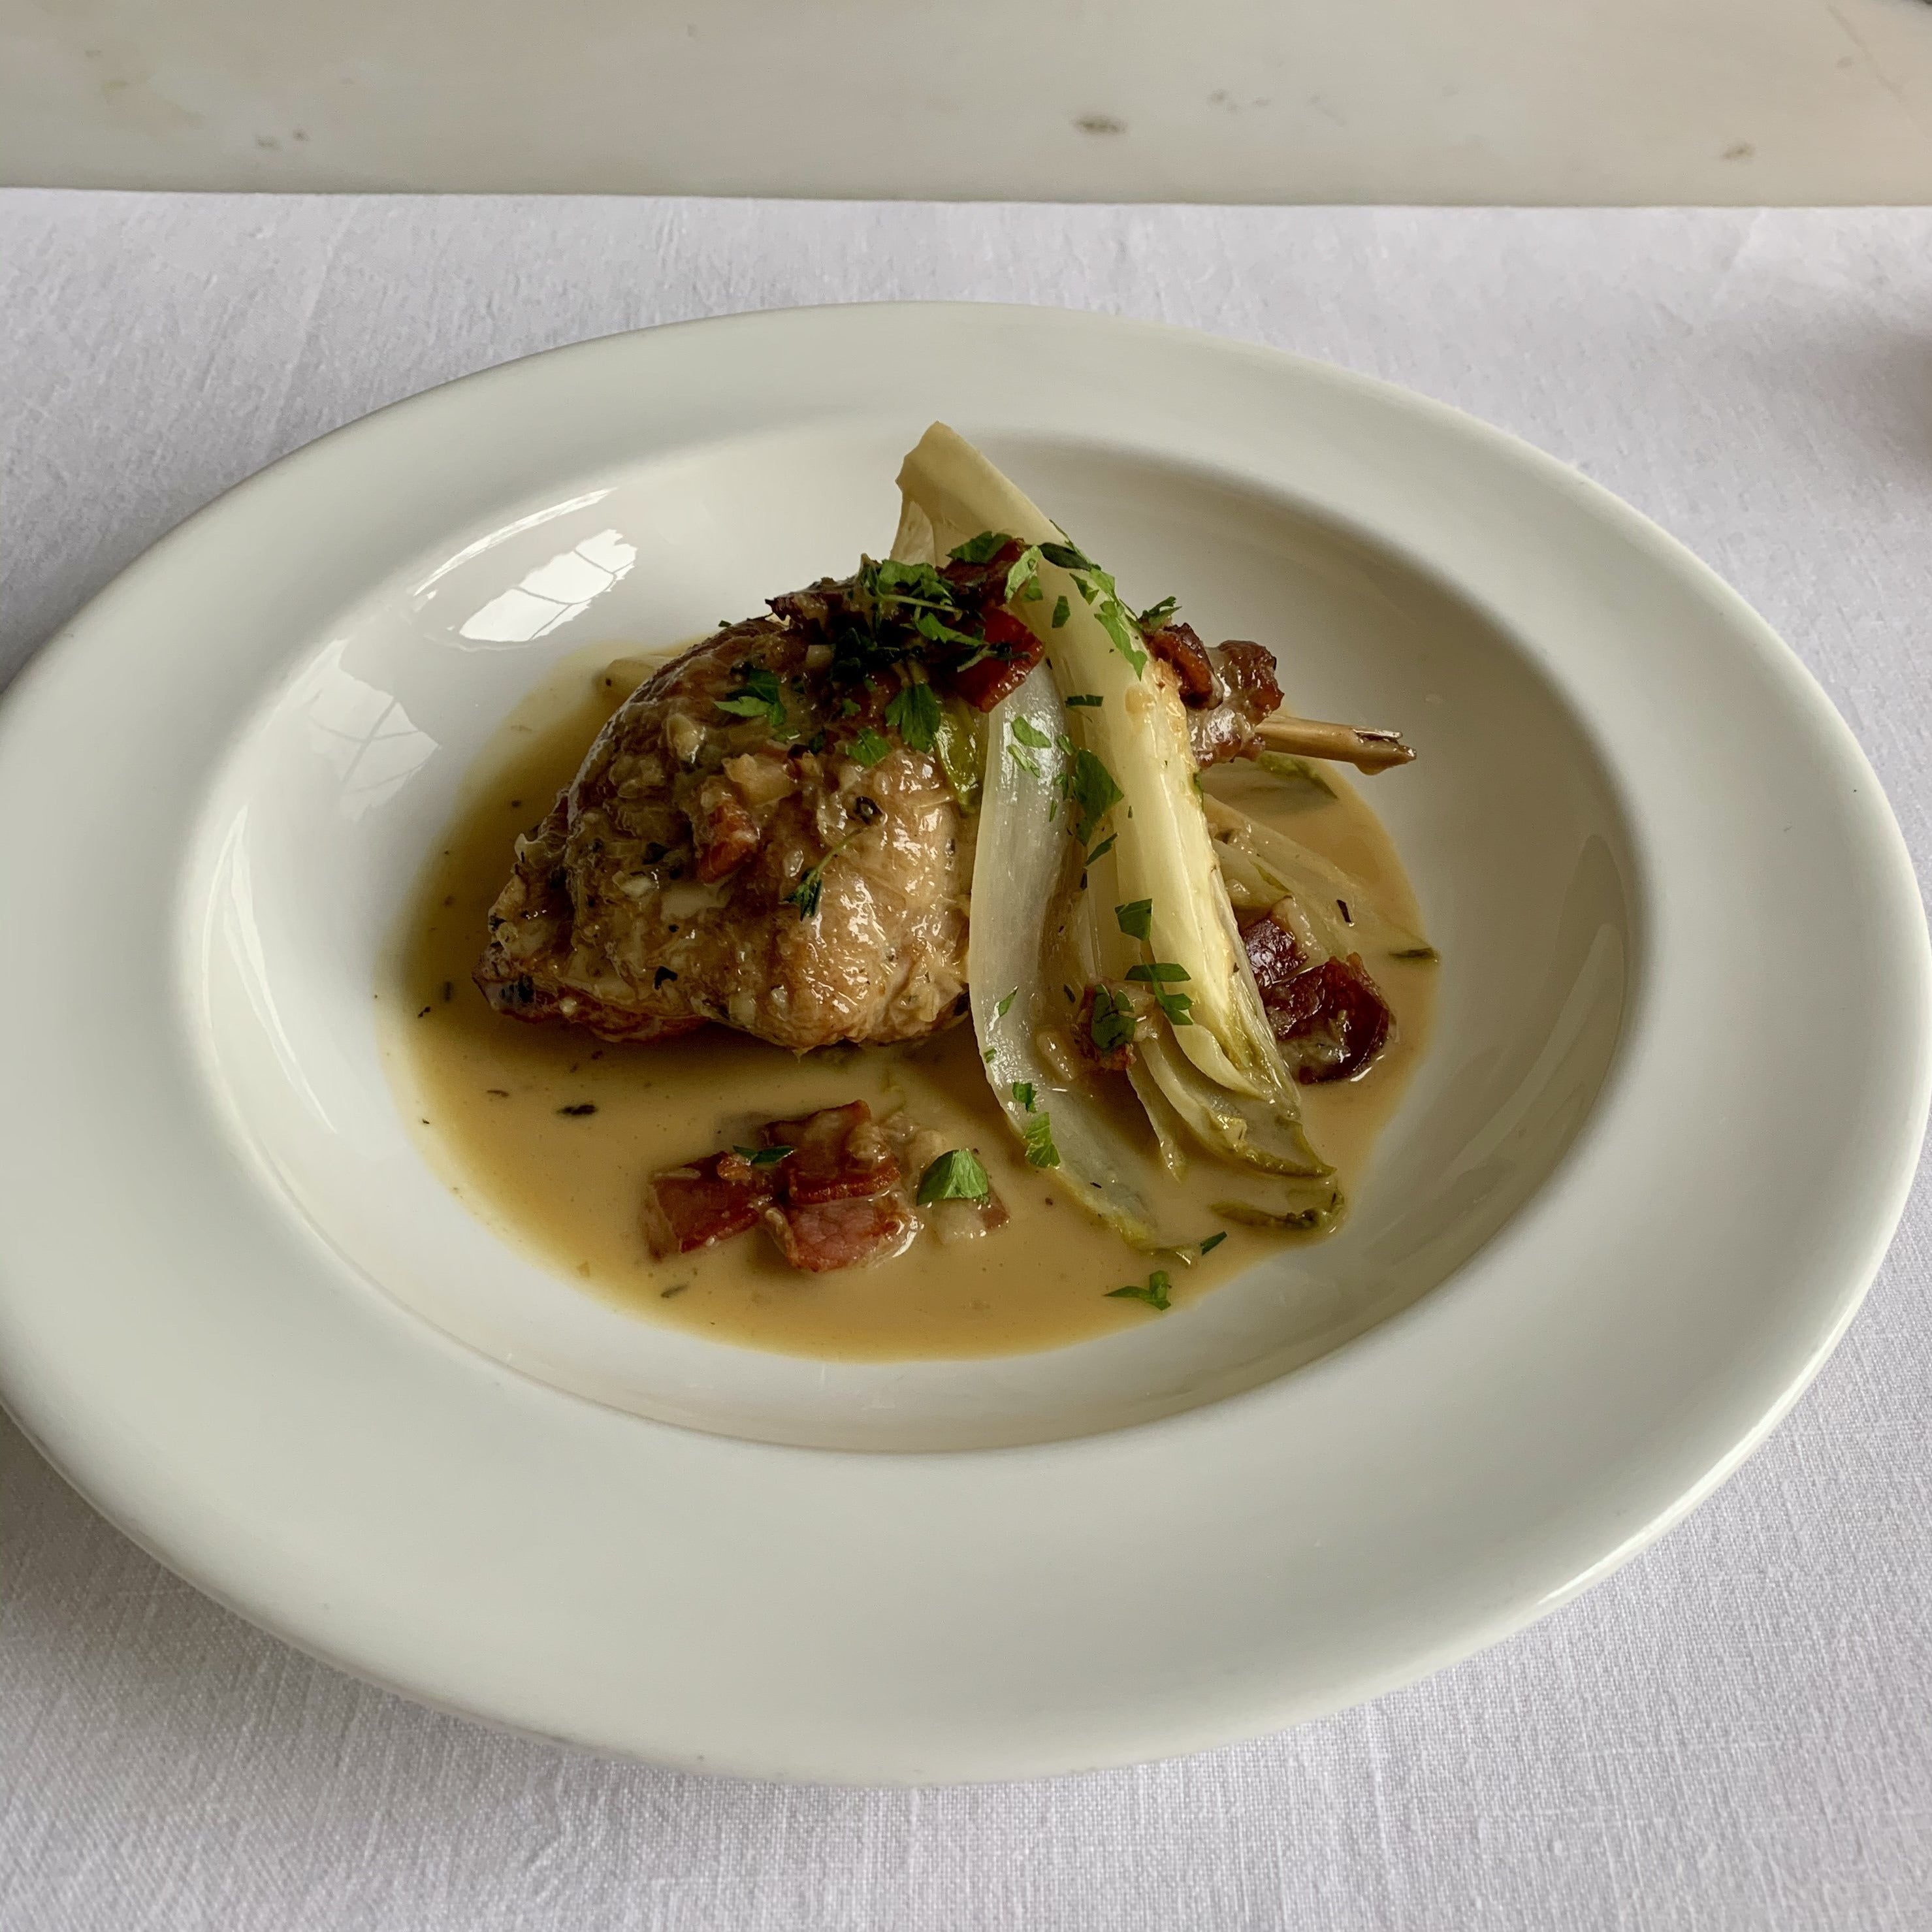 Braised Rabbit with Chicory, Pancetta, Verjus and Creme Fraiche